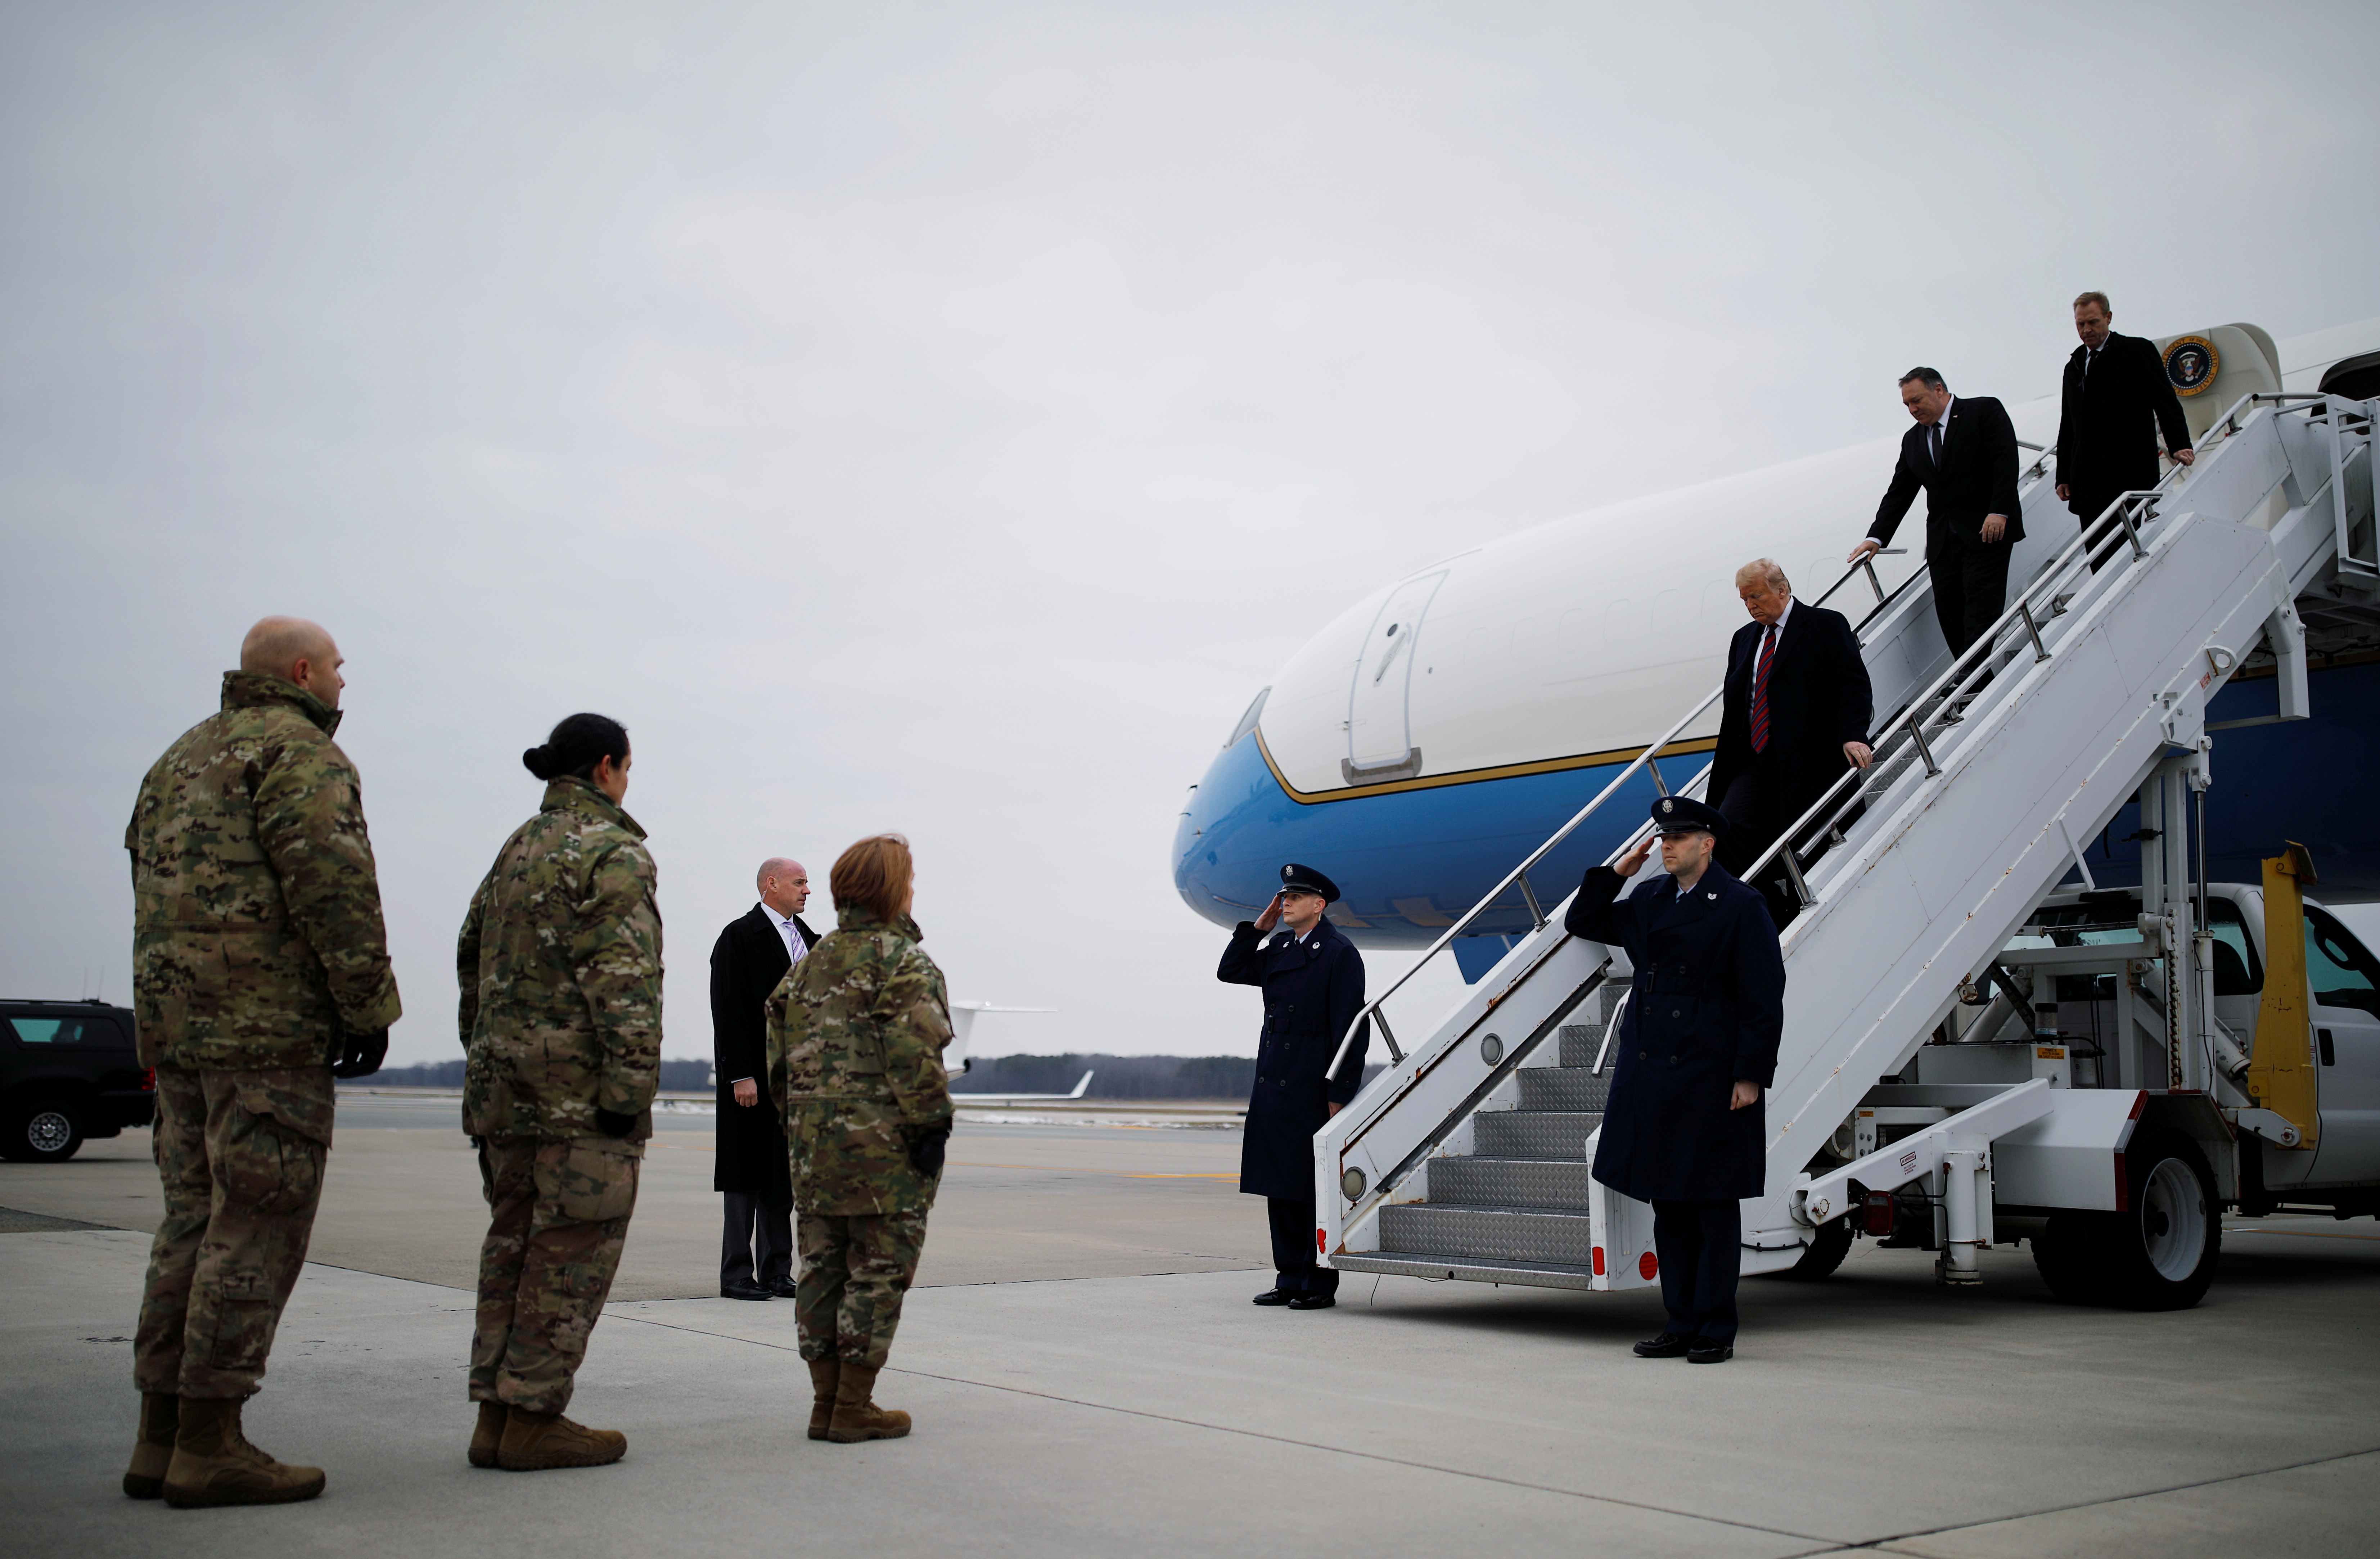 U.S. President Donald Trump exits Air Force One as he arrives at Dover Air Force Base to attend the dignified transfer ceremonies for the remains of four U.S. military members and citizens killed during a recent attack in Syria now being returned to the United States, in Dover, Delaware, U.S., January 19, 2019. REUTERS/Carlos Barria